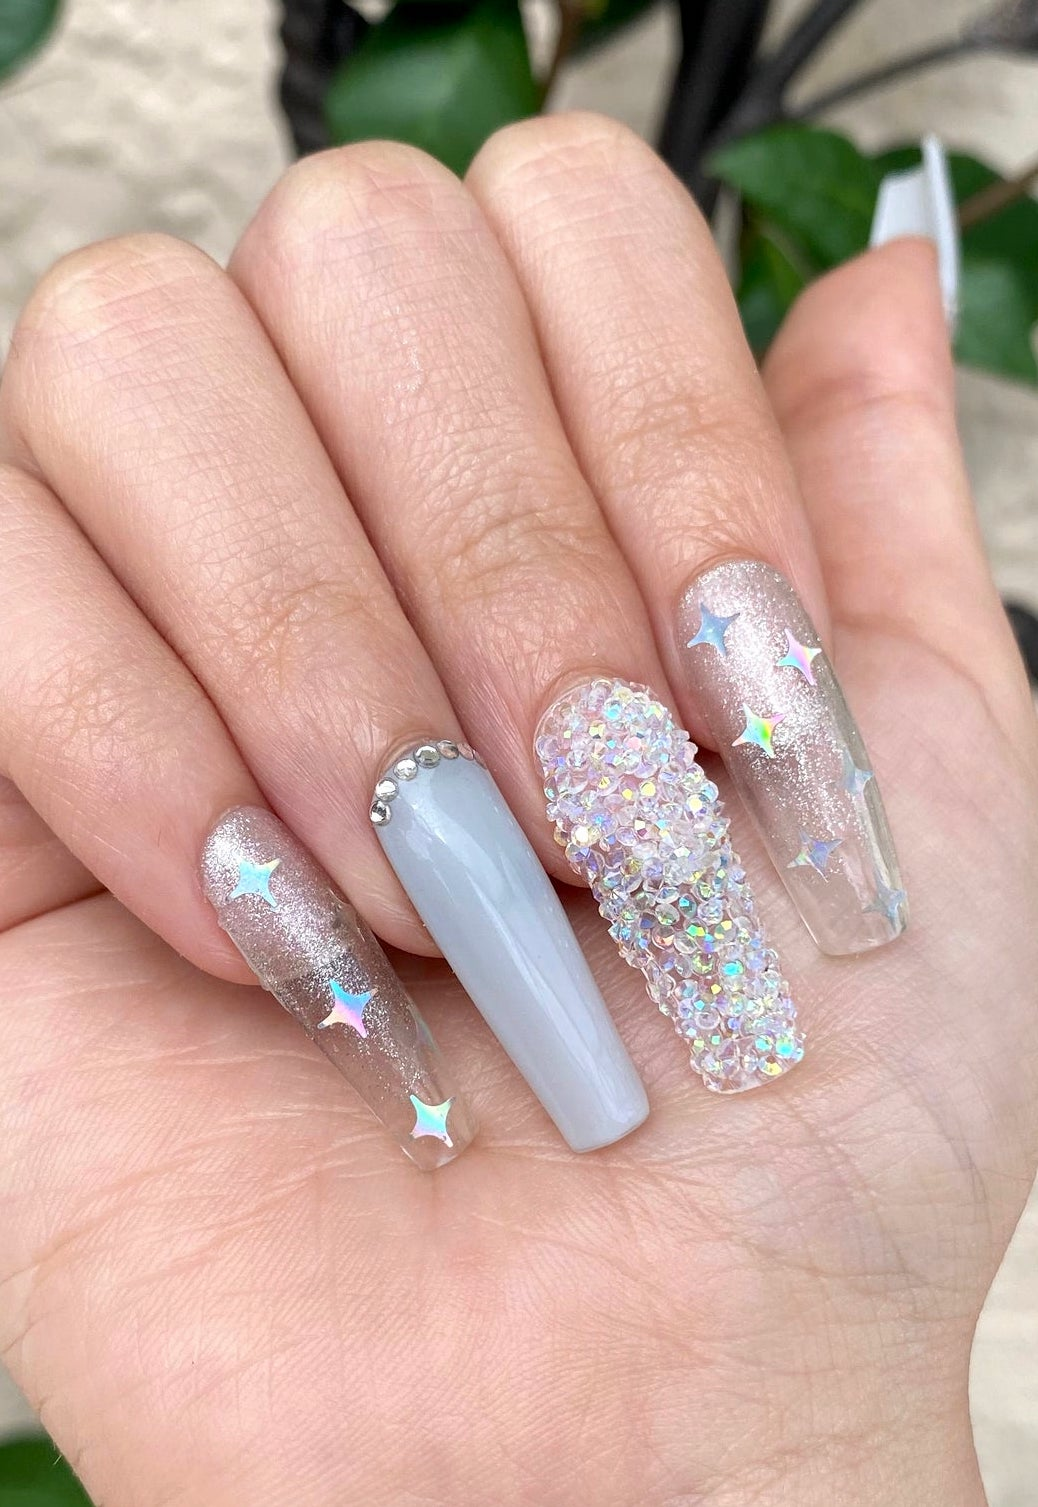 Light grey nails with transparent and glitter accents